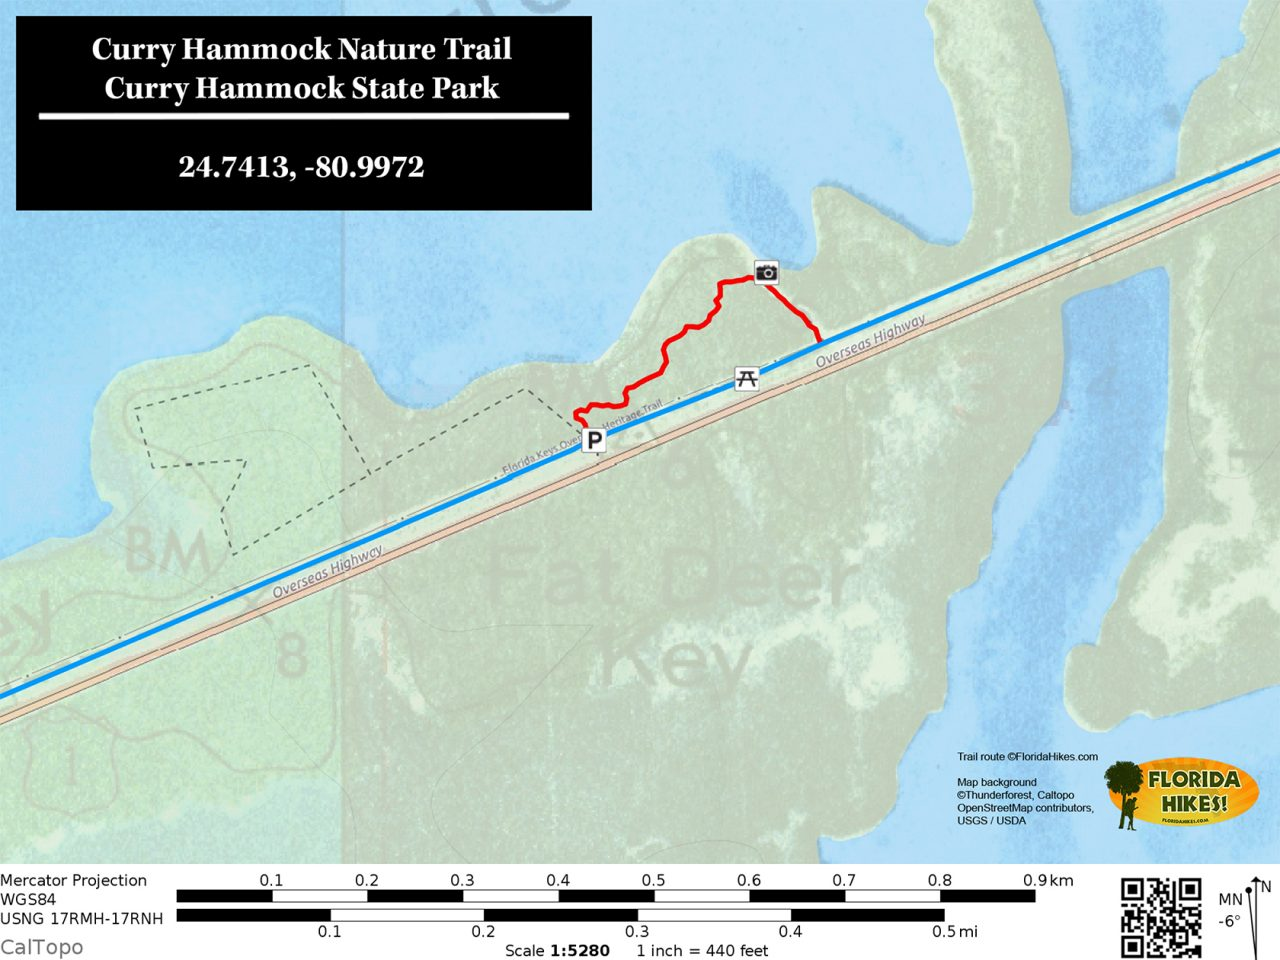 Curry Hammock Nature Trail map